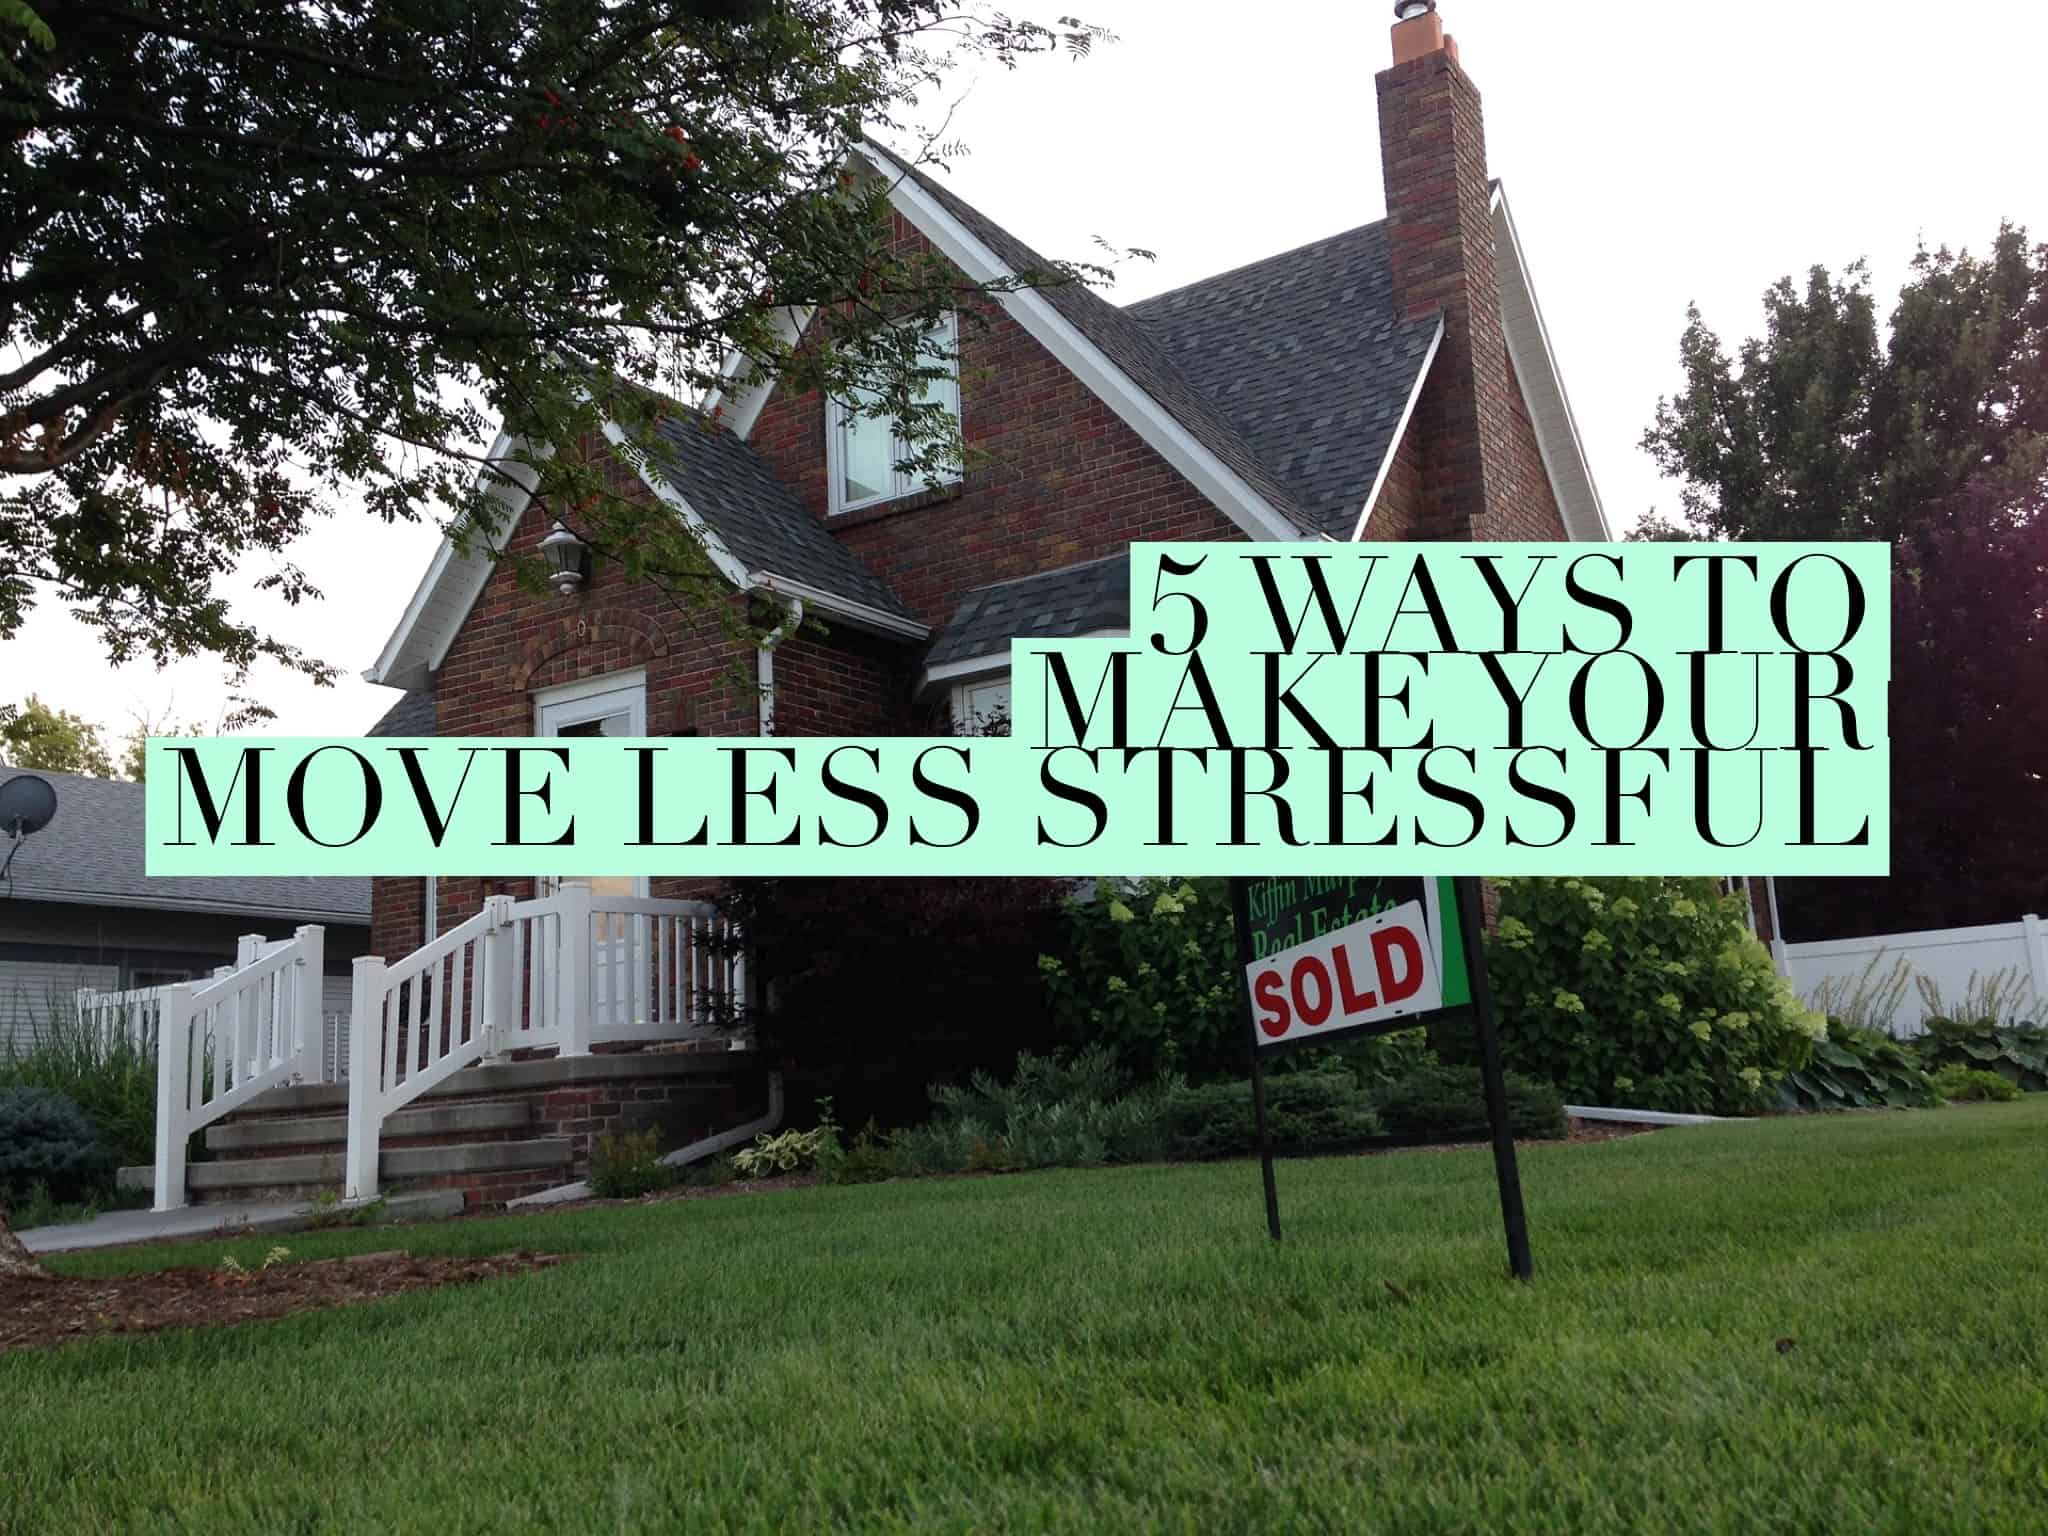 5 Ways to Make Your Move Less Stressful Title